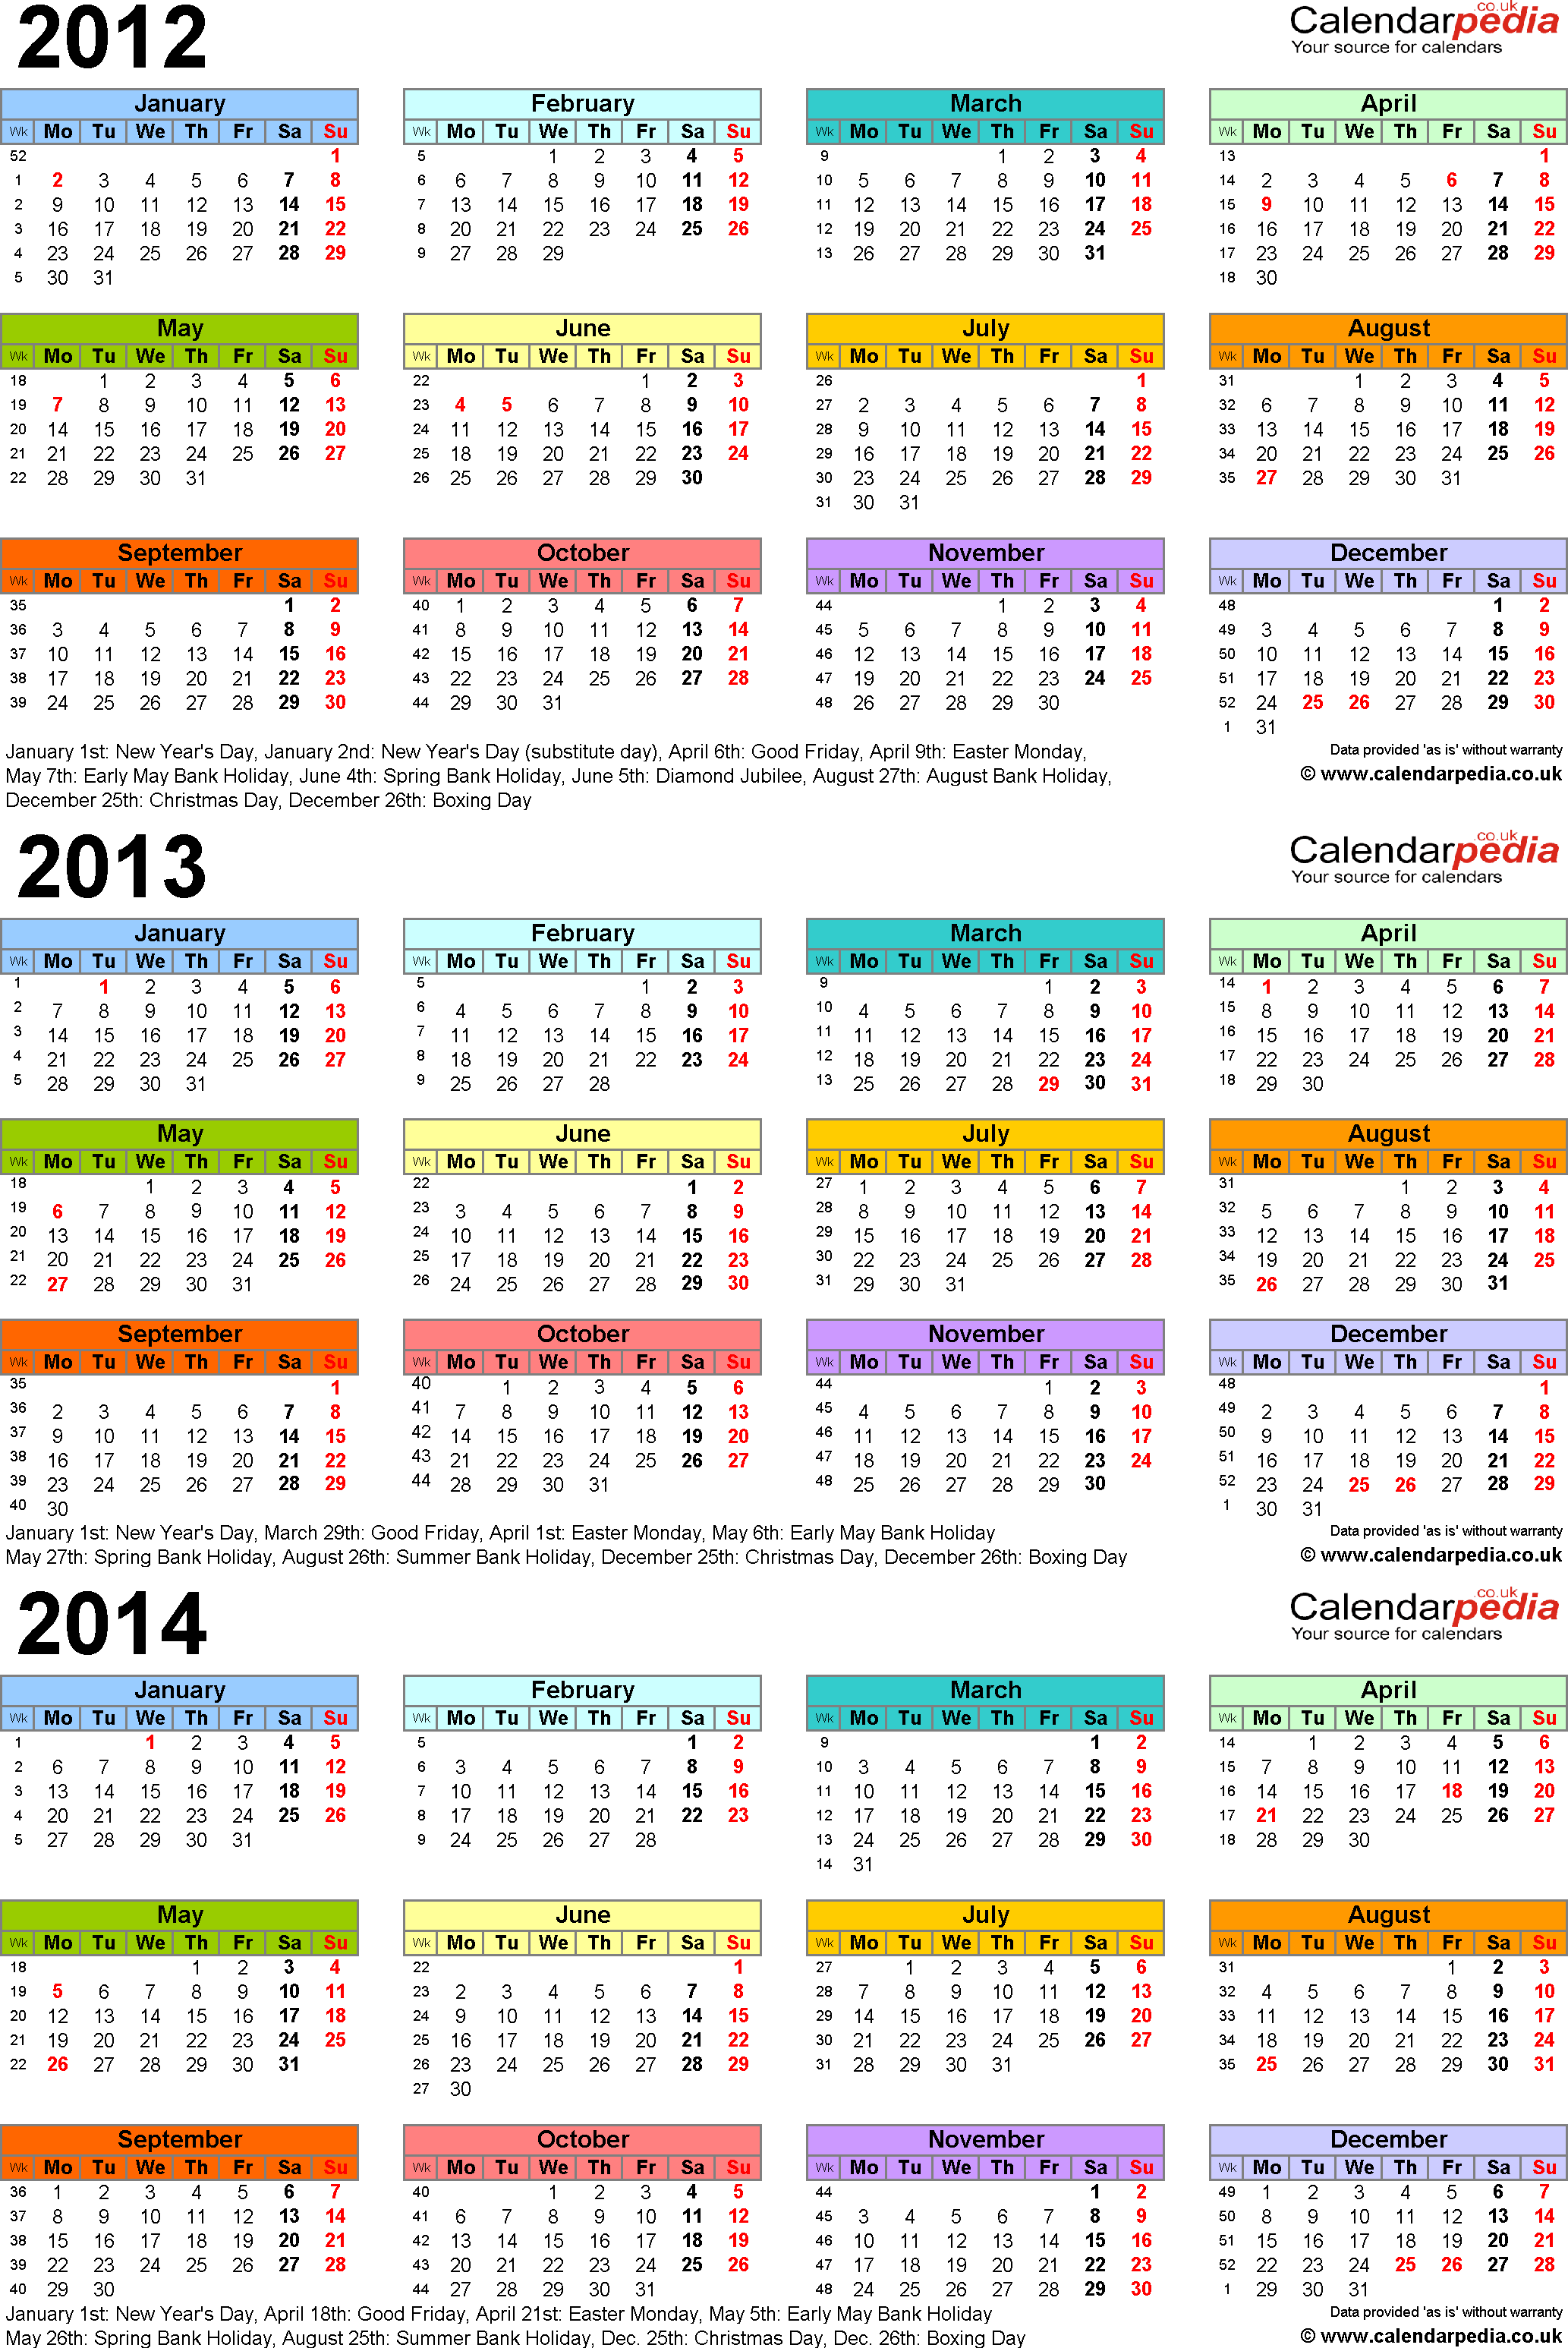 Download Template 3: PDF template for three year calendar 2012-2014 in colour (portrait orientation, 1 page, A4)